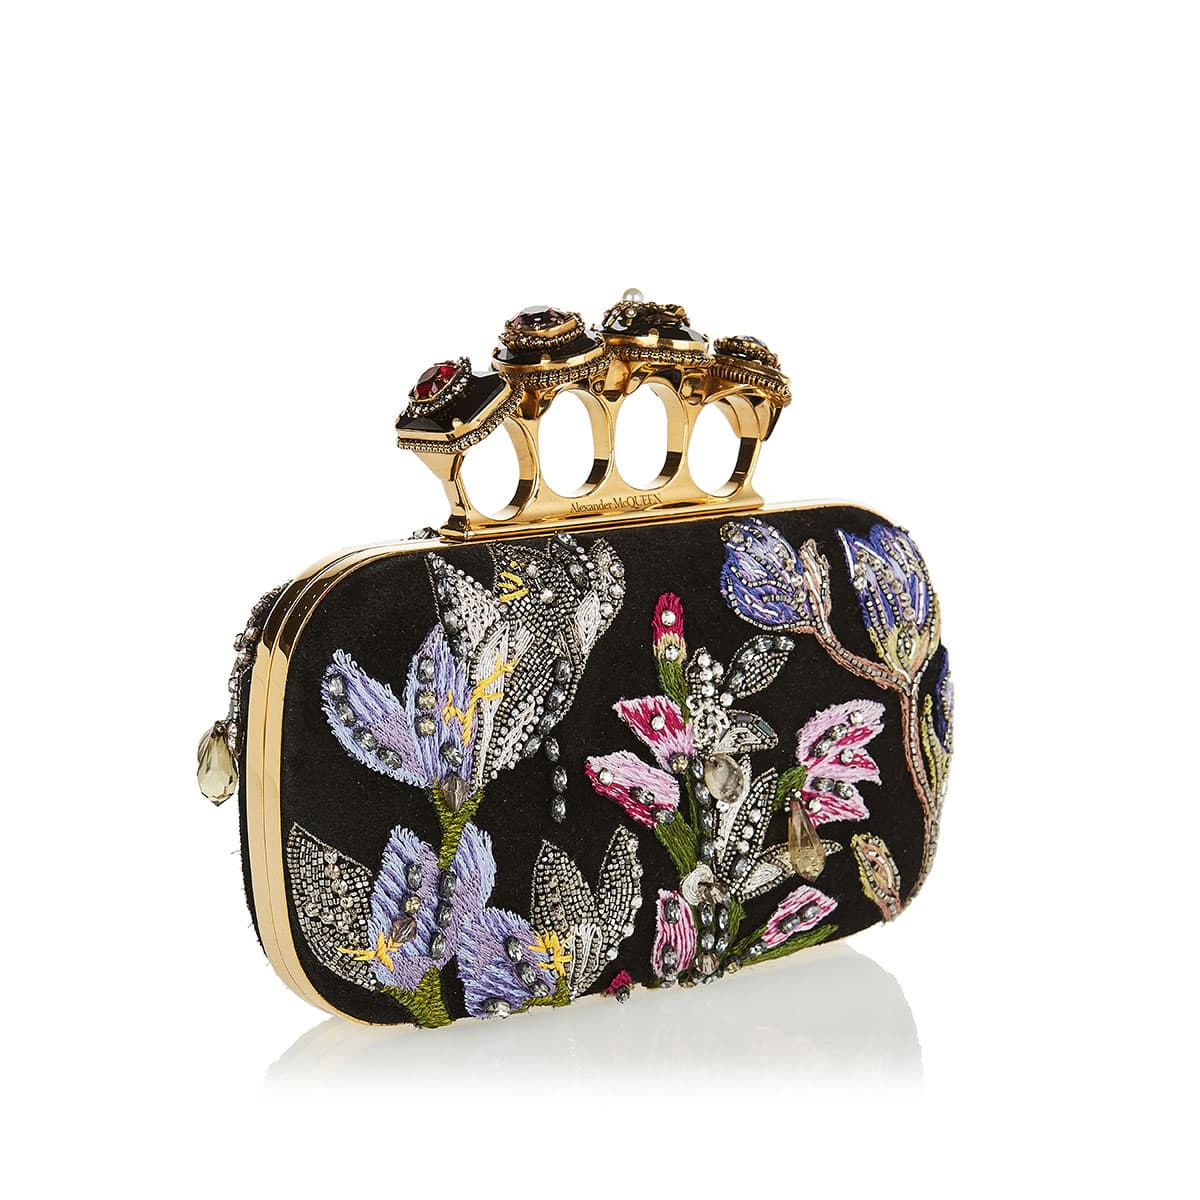 Four Ring embroidered crystal box clutch